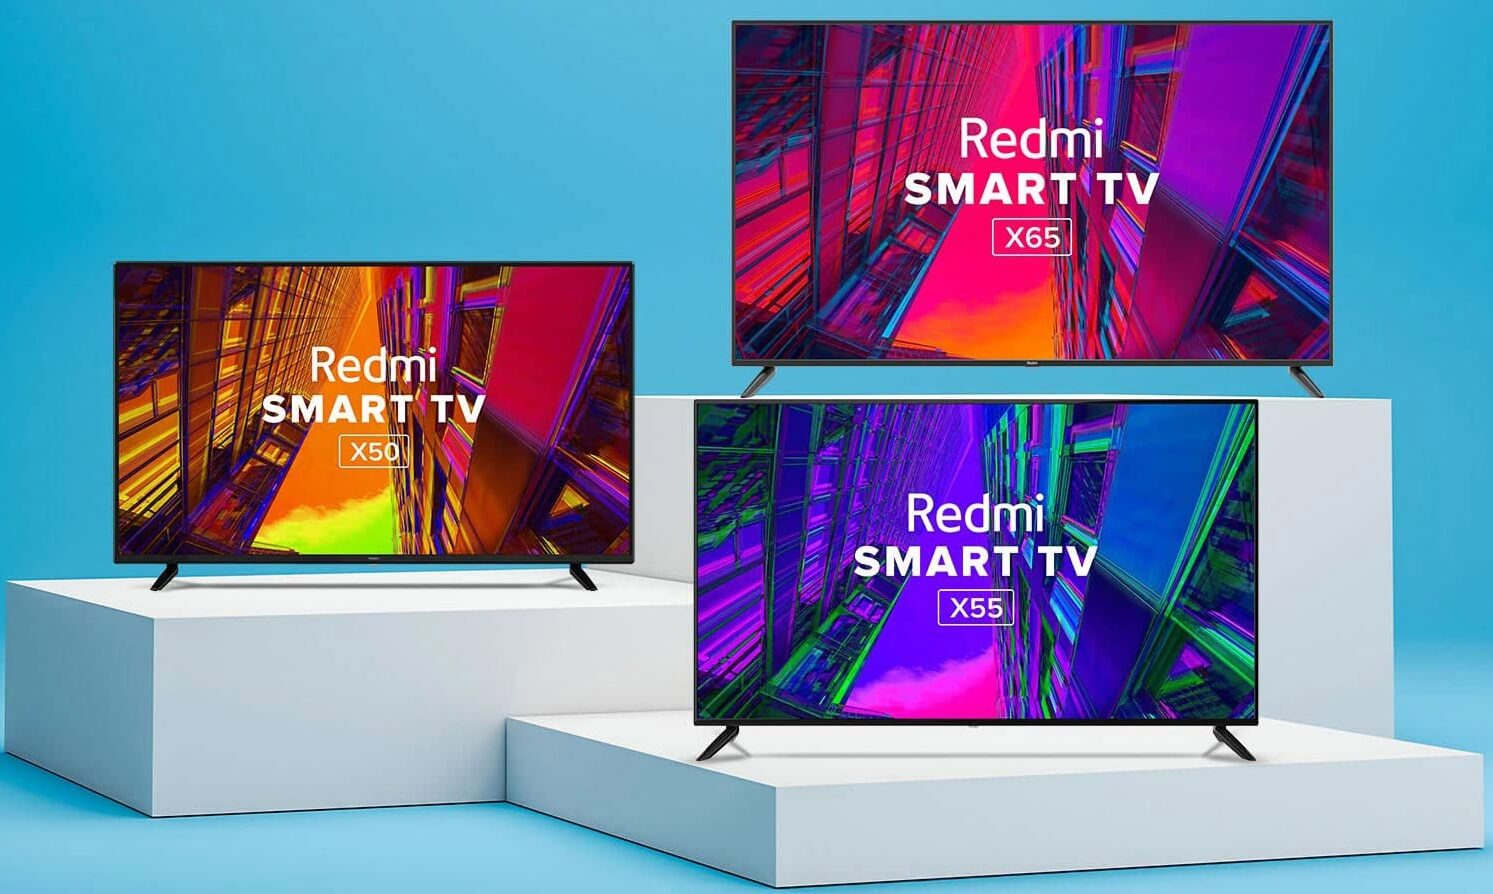 Redmi Smart TV X50 X55 X65